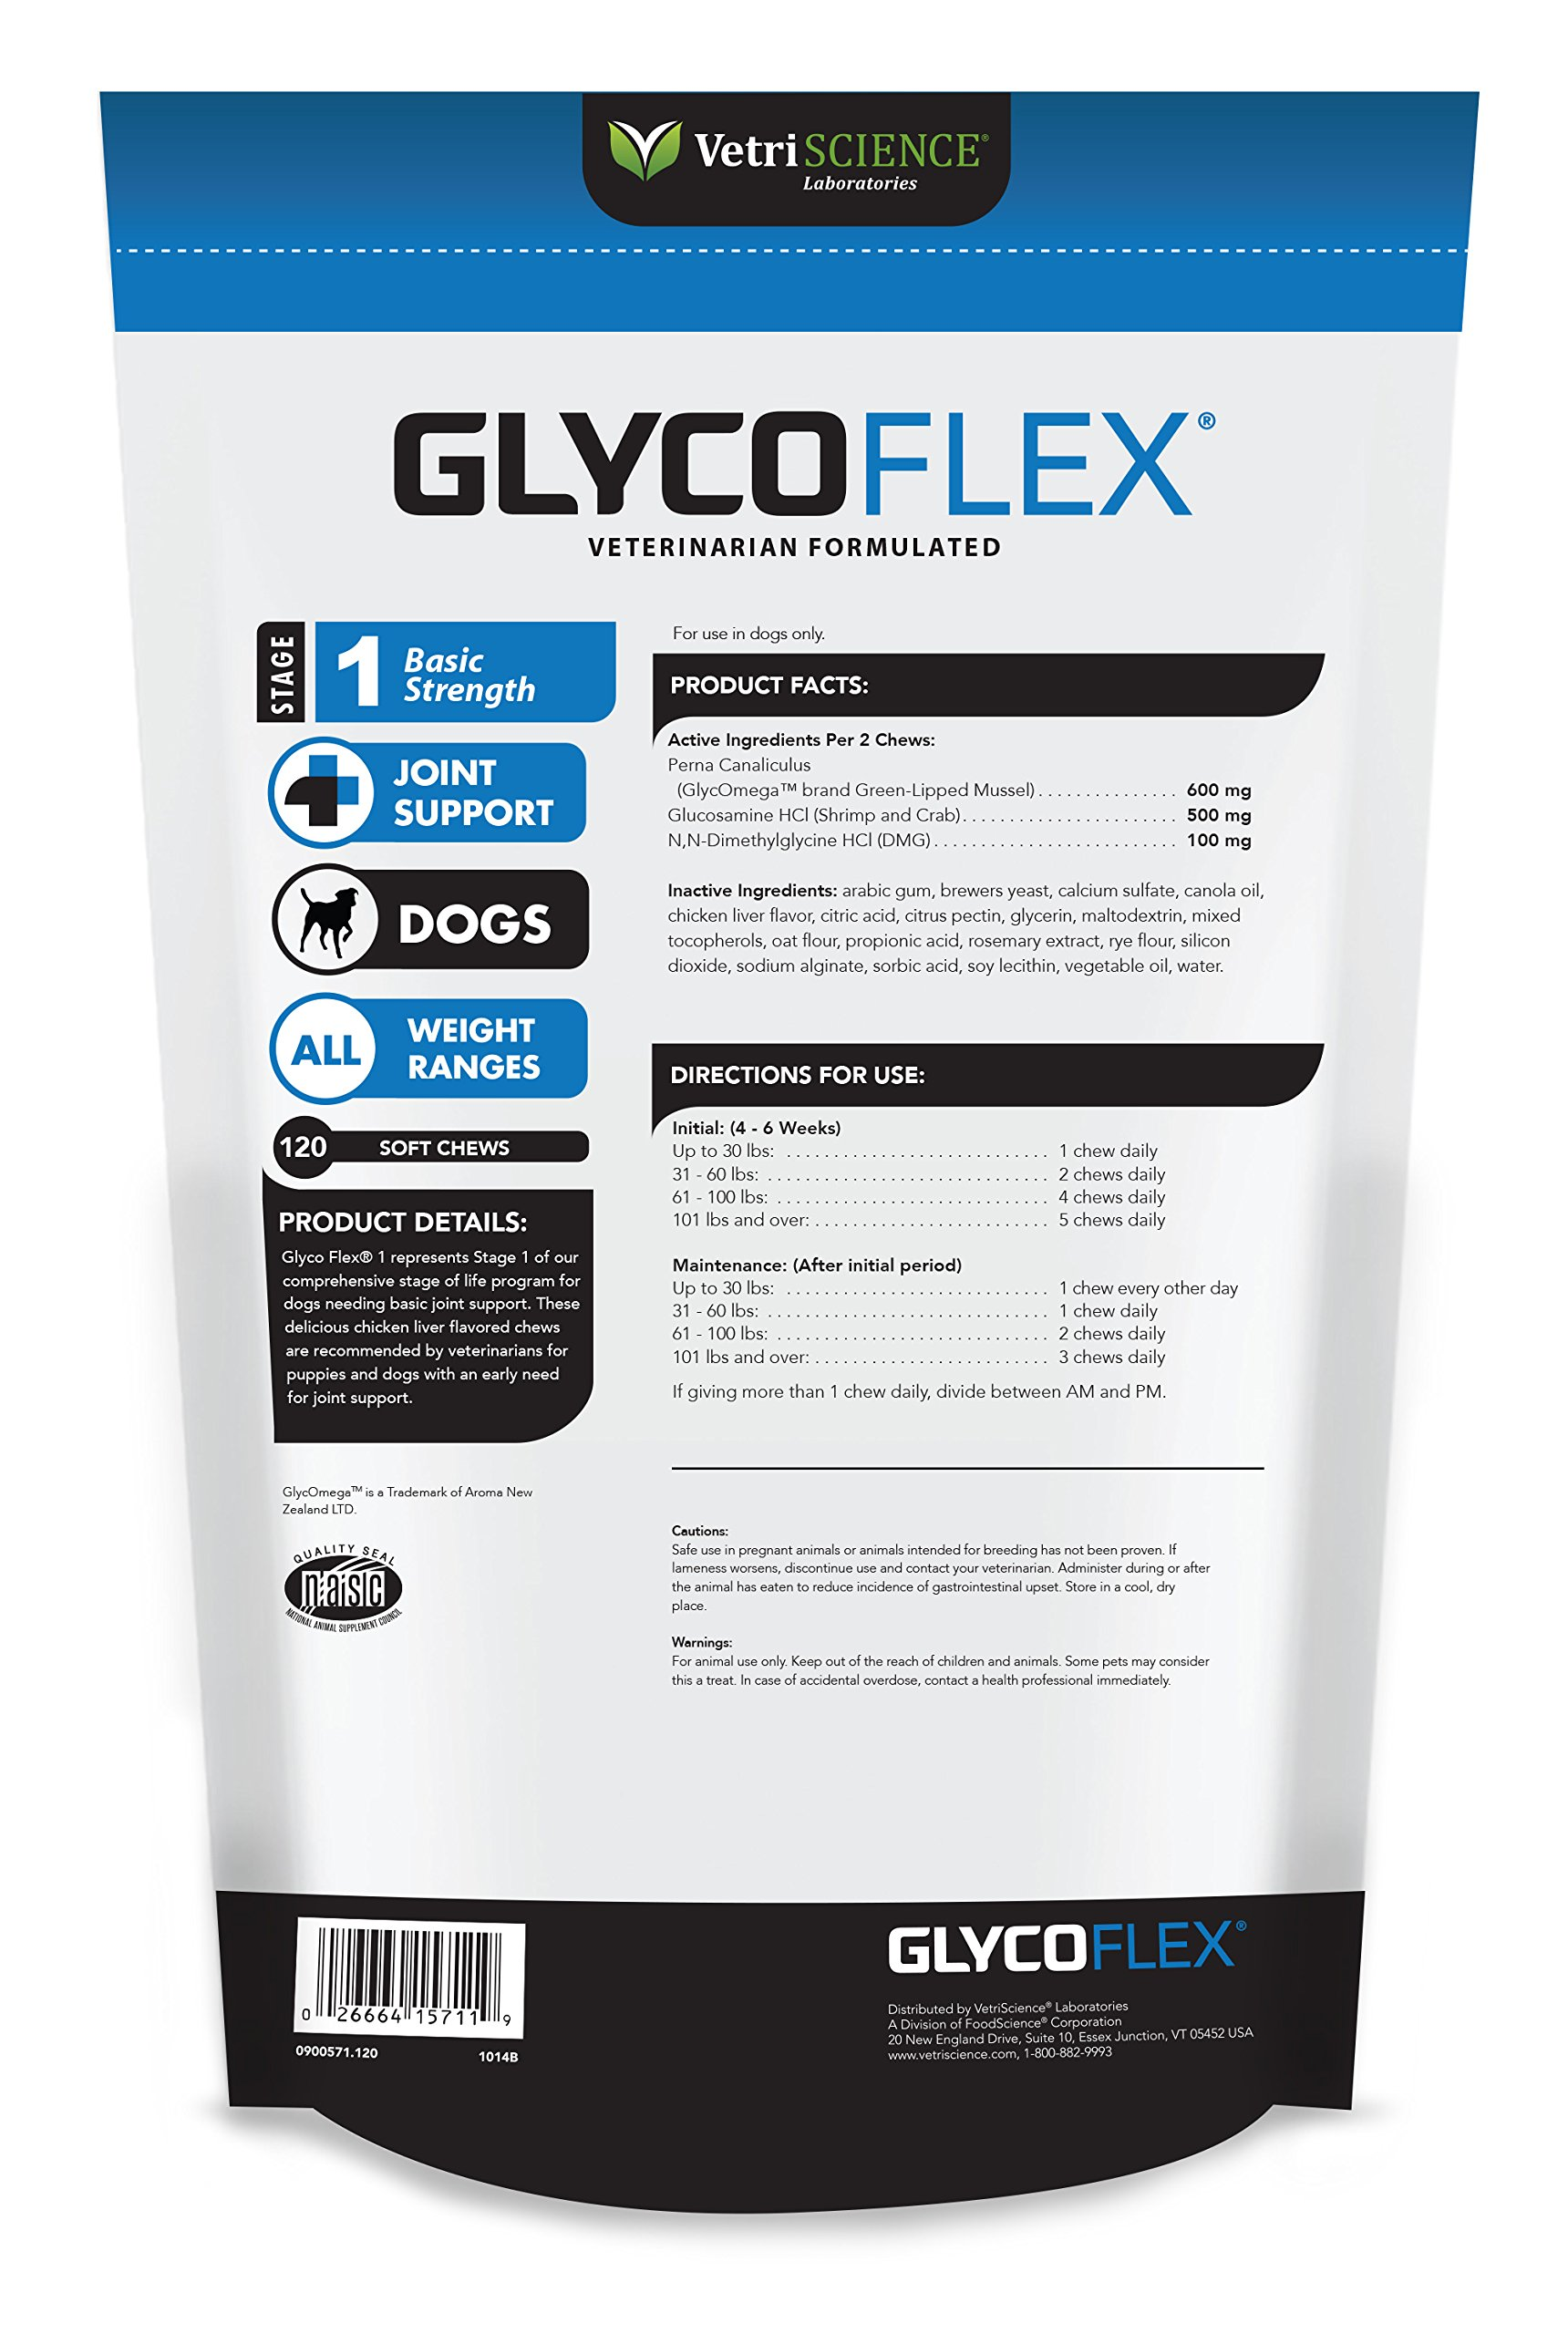 VetriScience Laboratories GlycoFlex 1, Hip and Joint Supplement for Dogs, 120 Bite Sized Chews